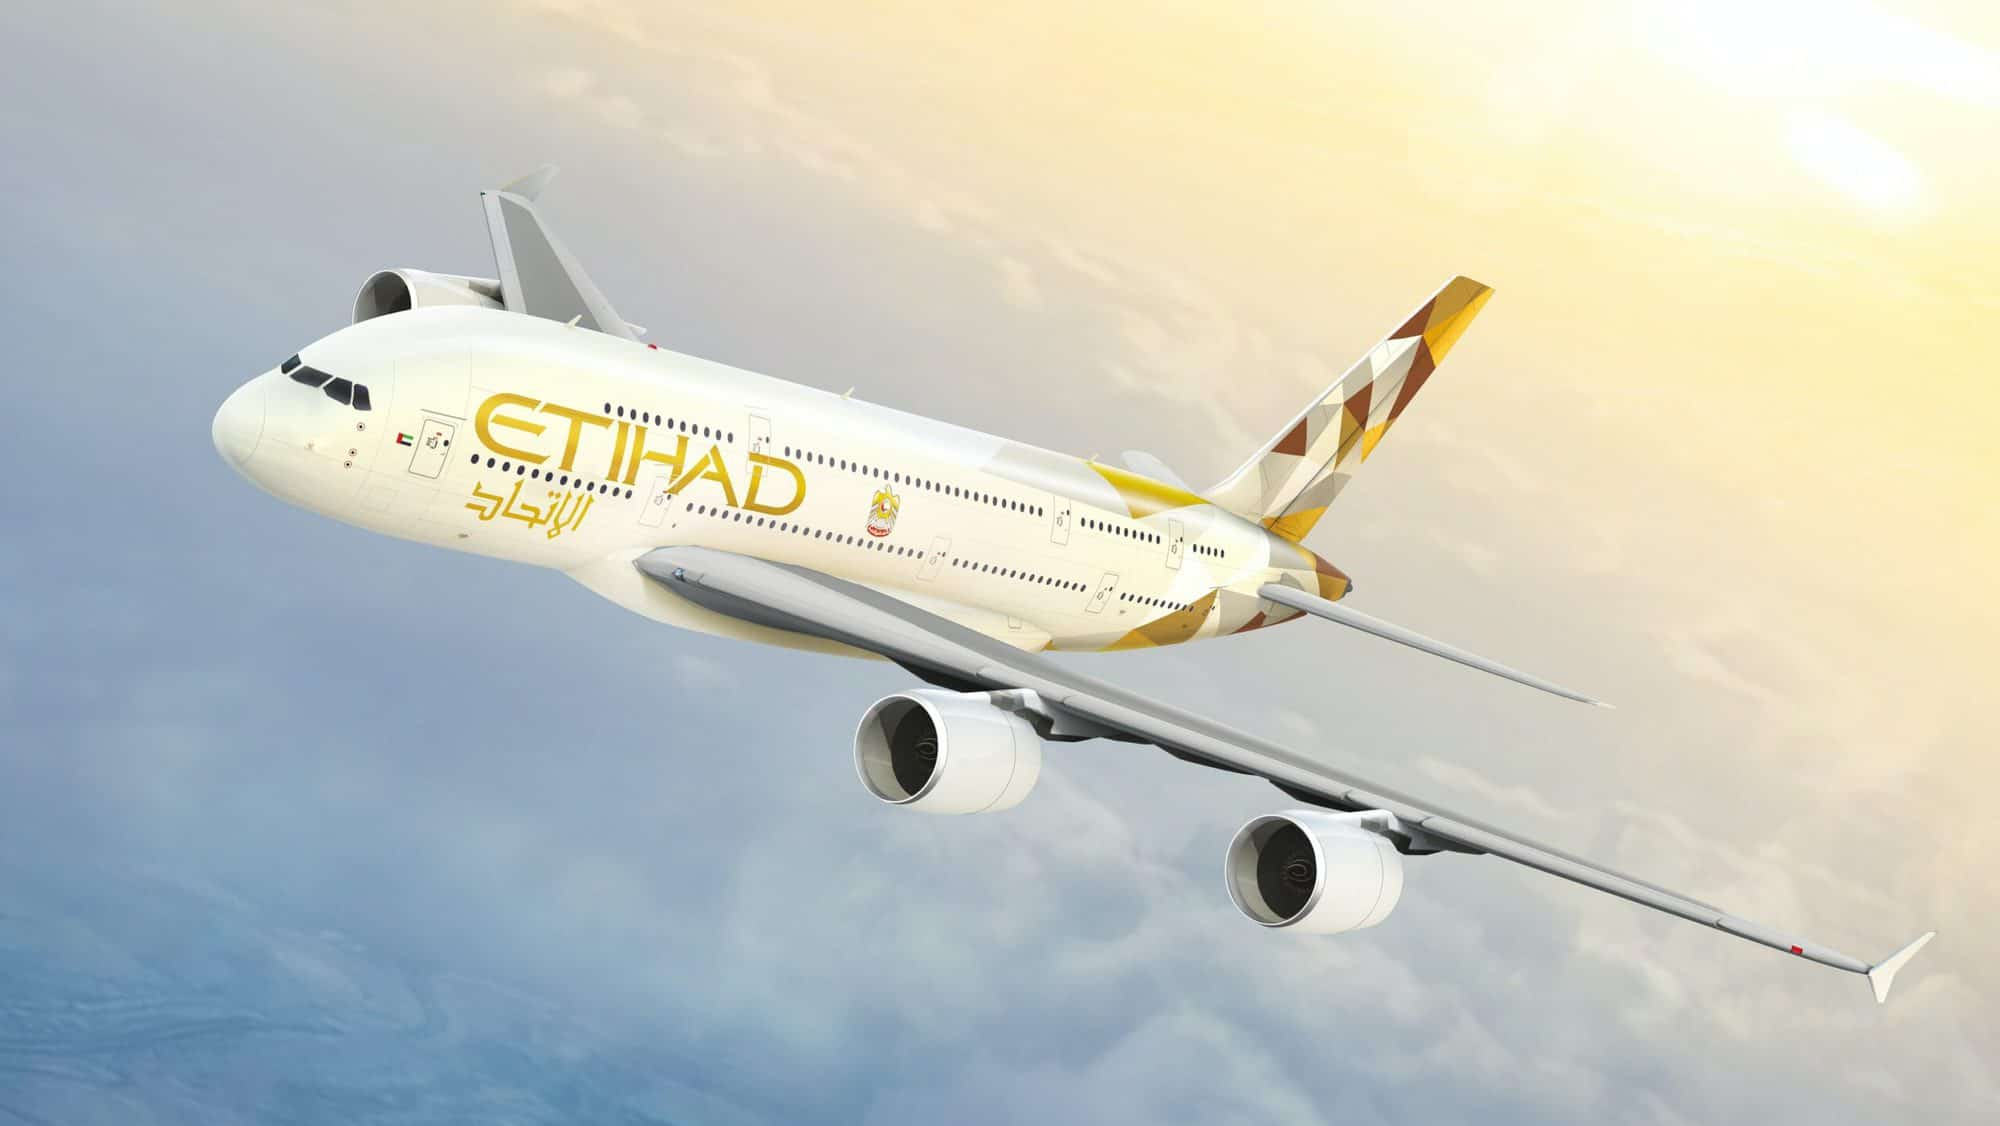 Most Expensive Airlines - Etihad